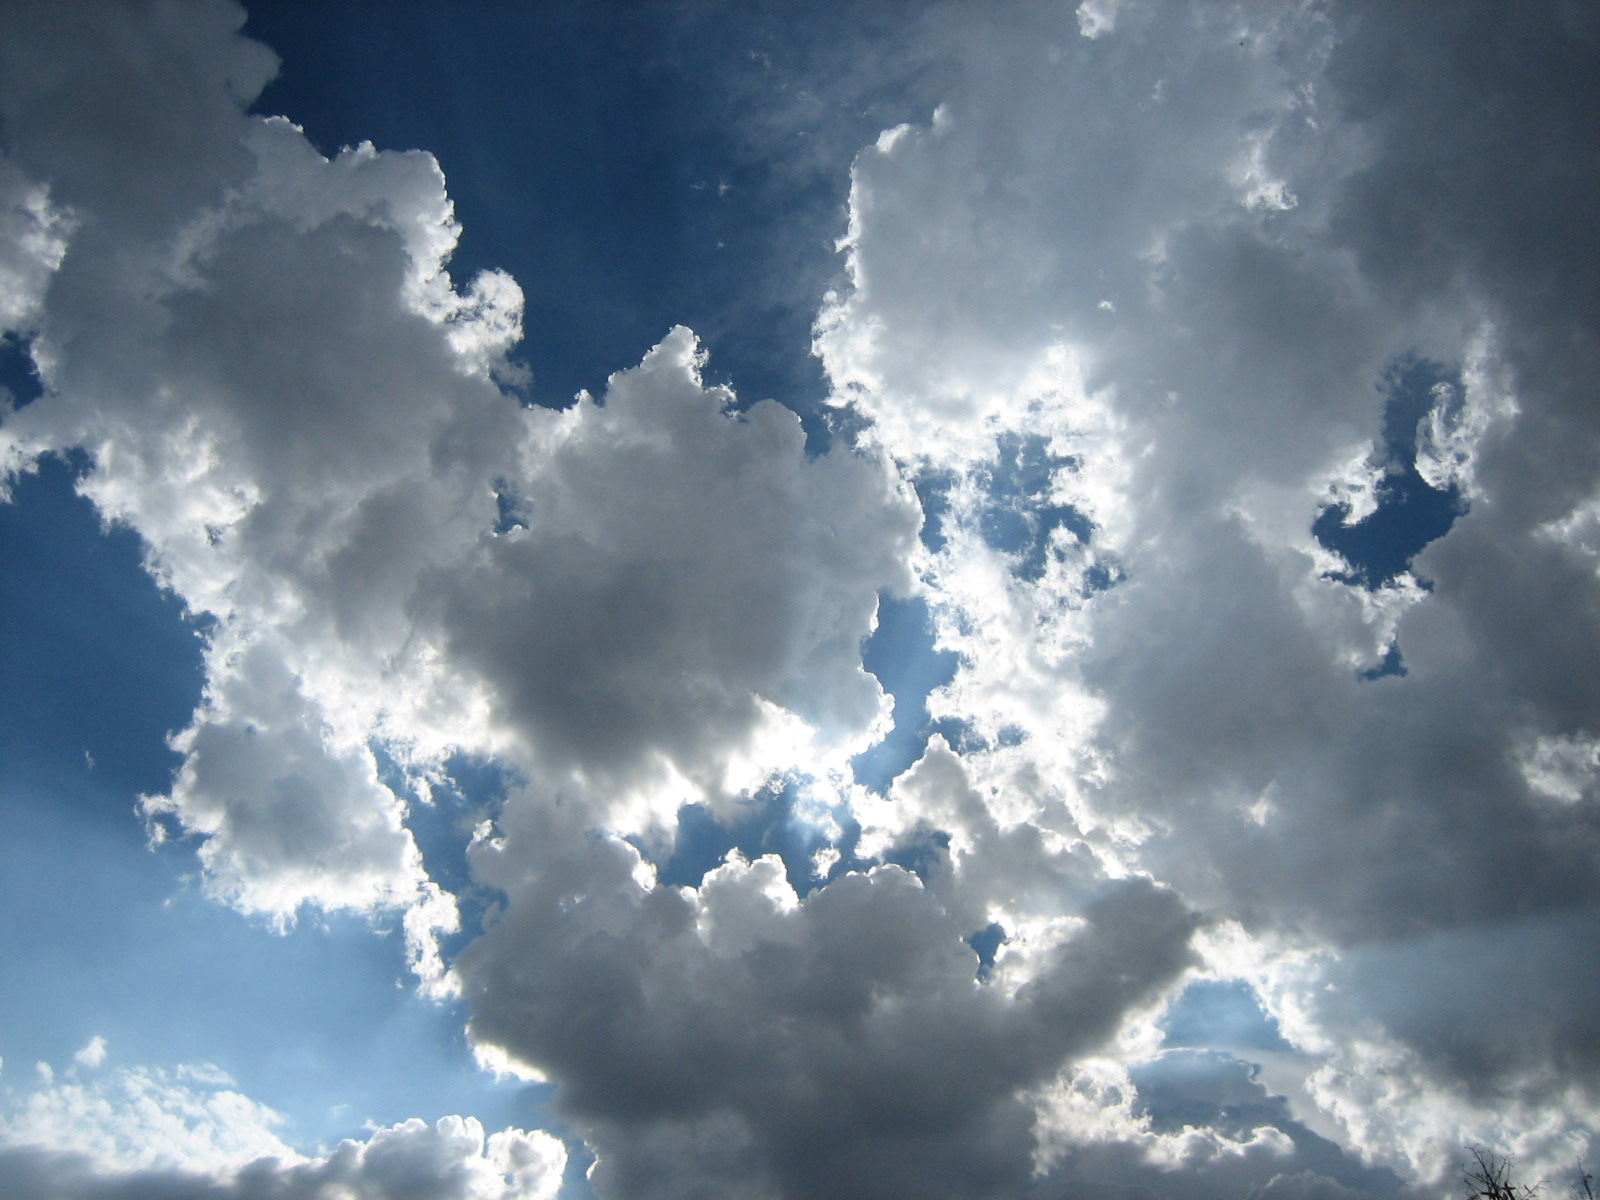 Clouds, Blue, Bspo06, Light, Puffy, HQ Photo